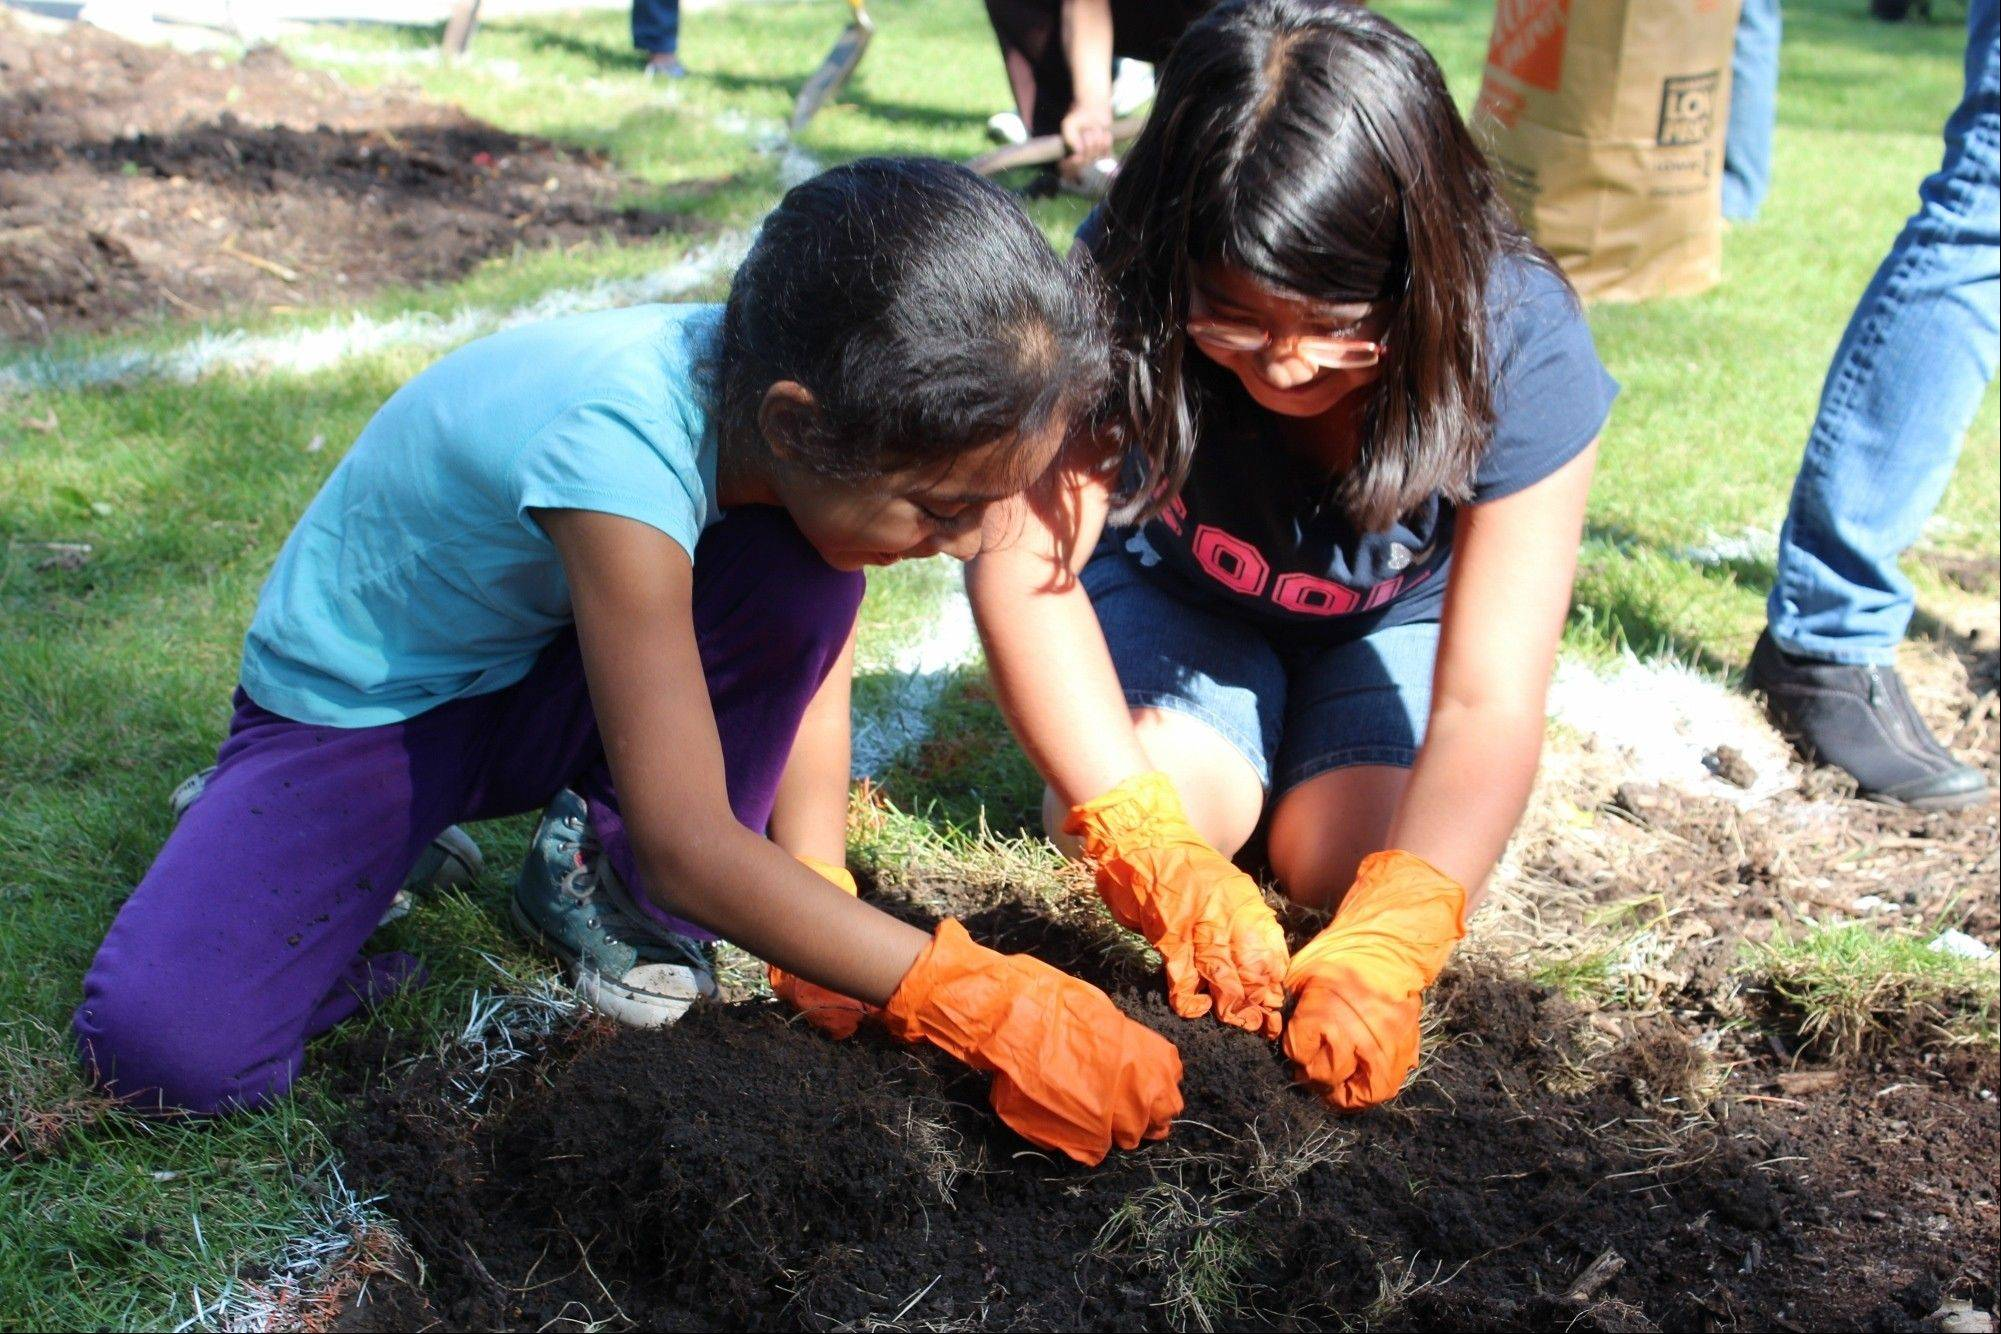 Third-graders Sheila M. (left) and Sharlyn C. dig up grass to expand the heart-shaped flower bed in front of Kilmer Elementary School on Friday, Sept. 27.